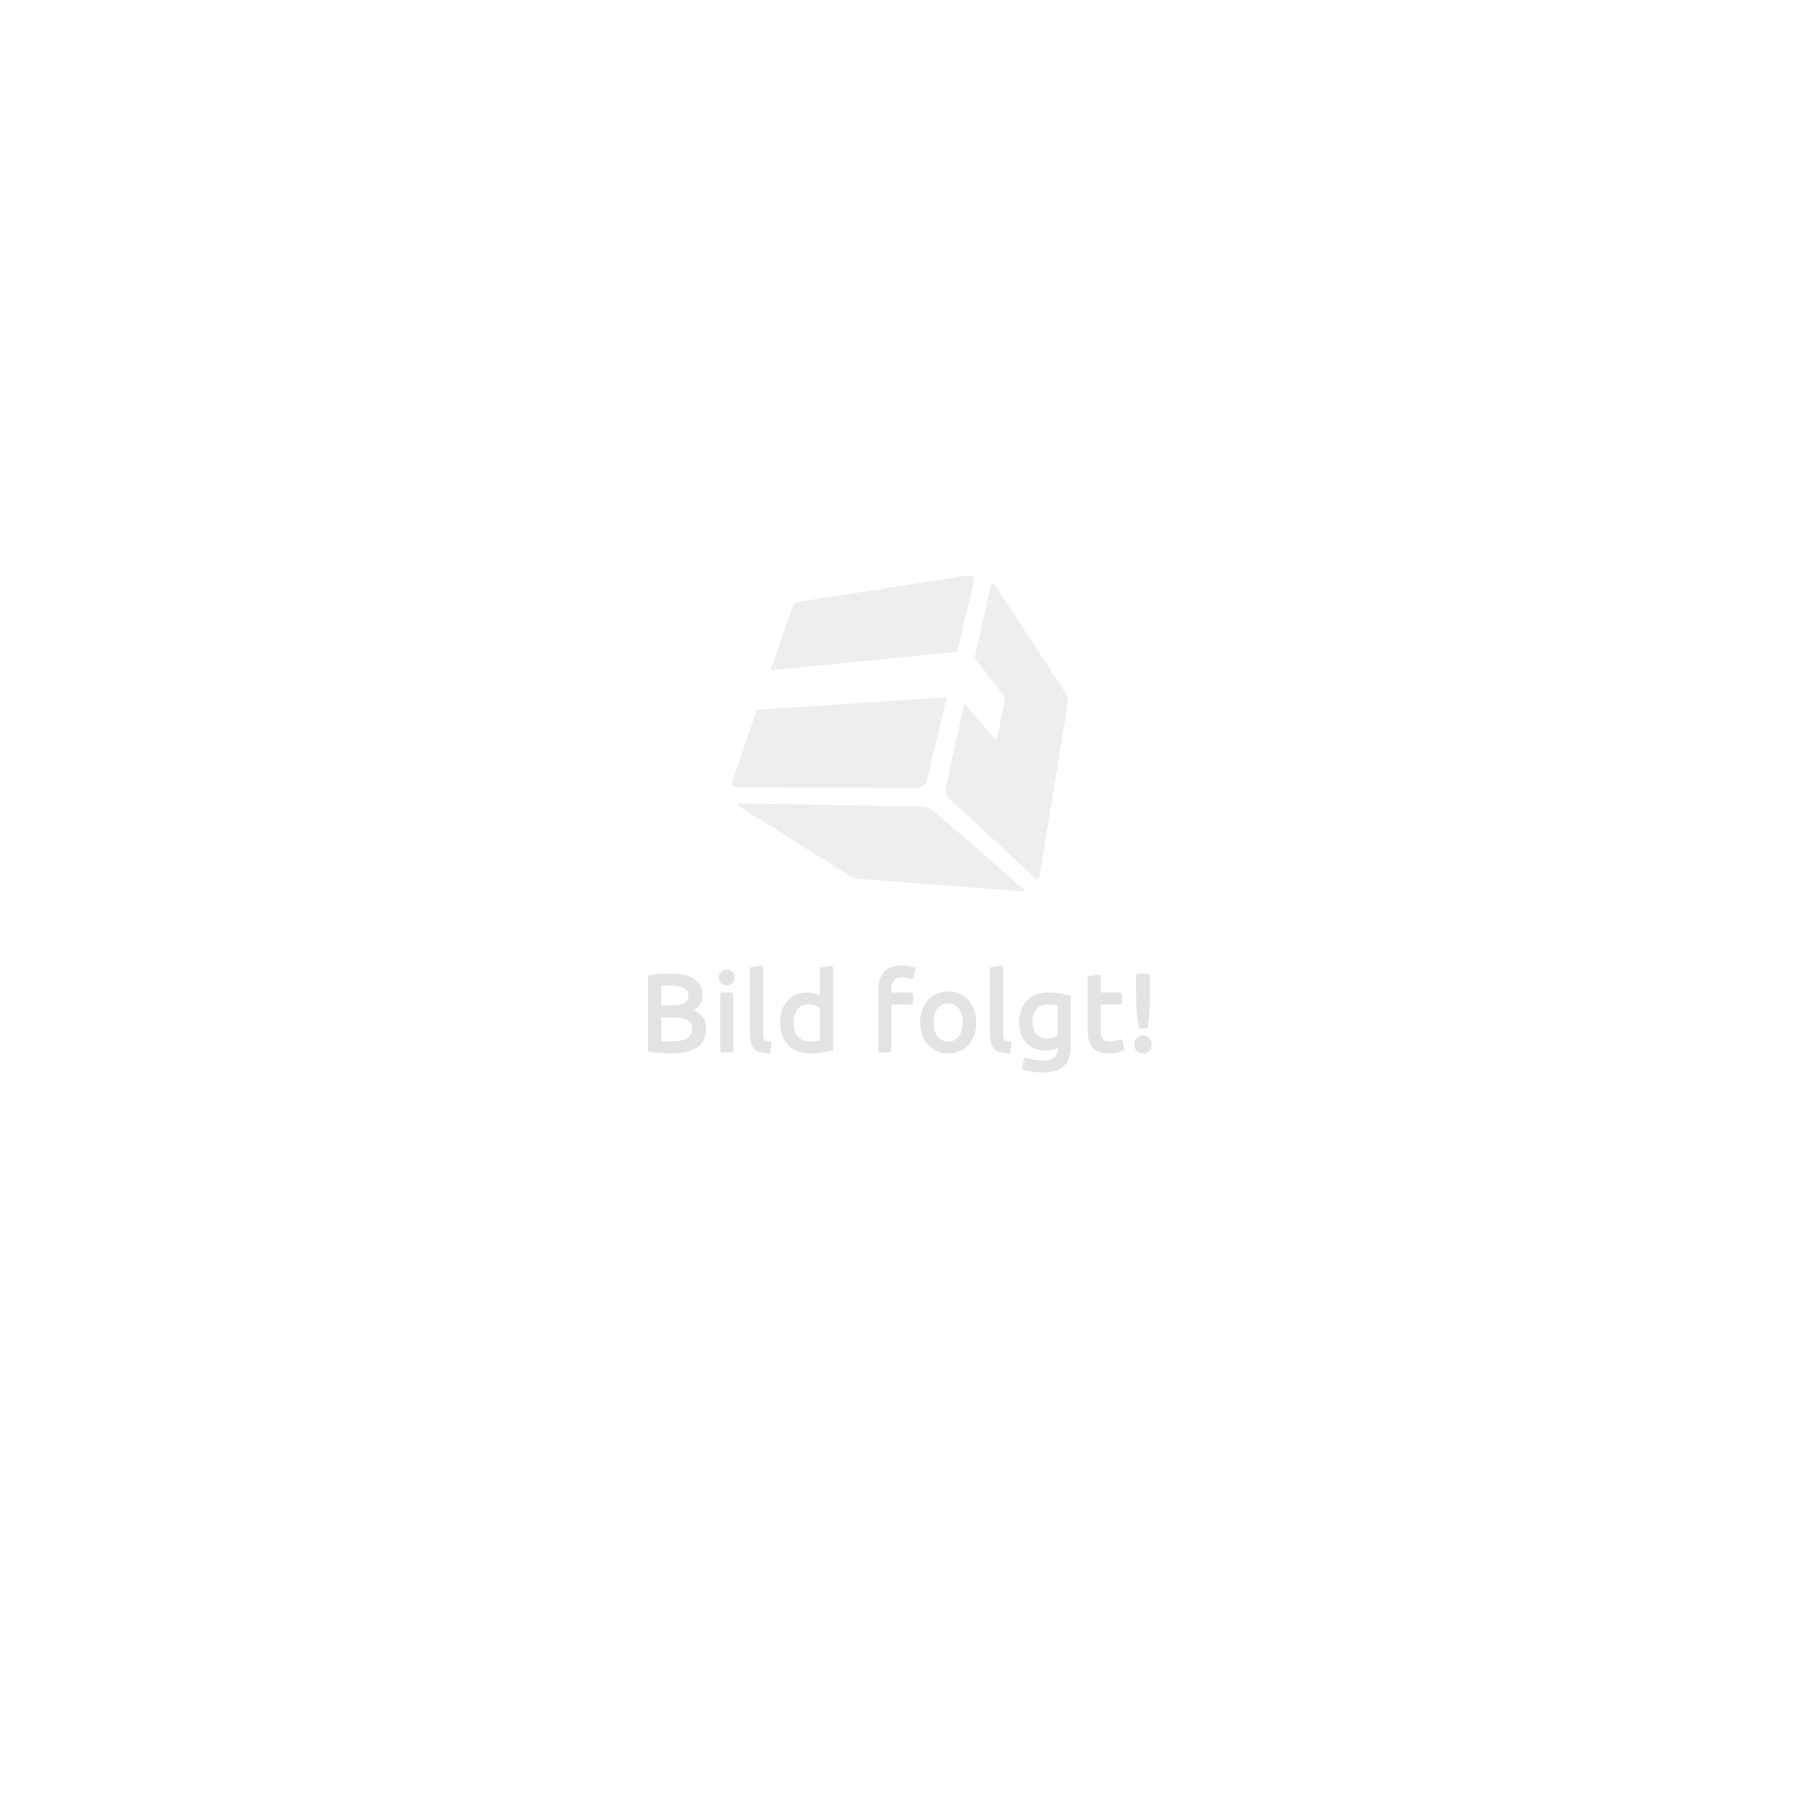 Abattant WC, Lunette de Toilette - Système Easy Close blanc